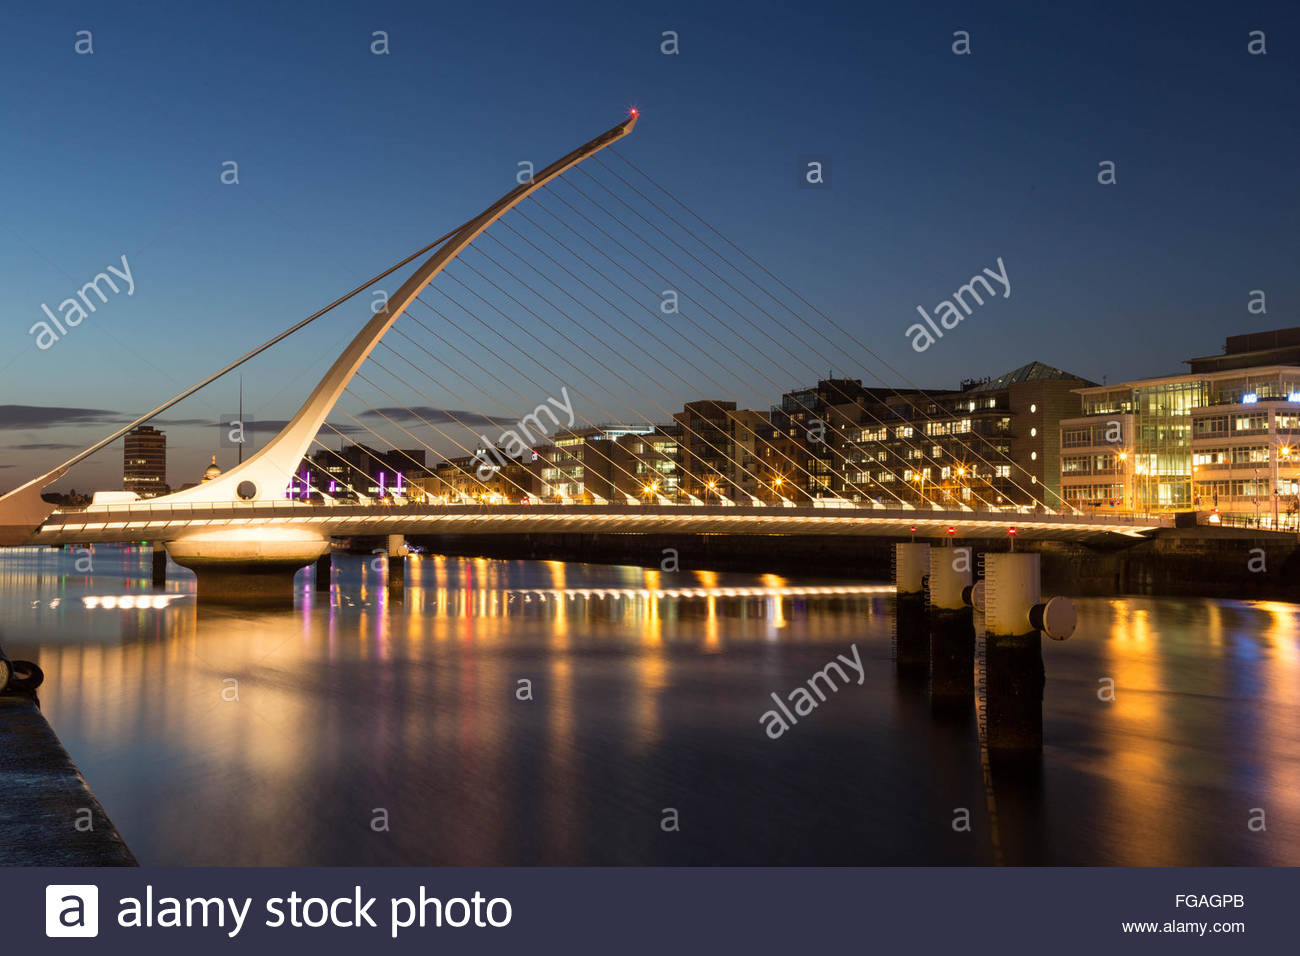 Illuminated Samuel Beckett Bridge Over River Against Sky Stock Photo